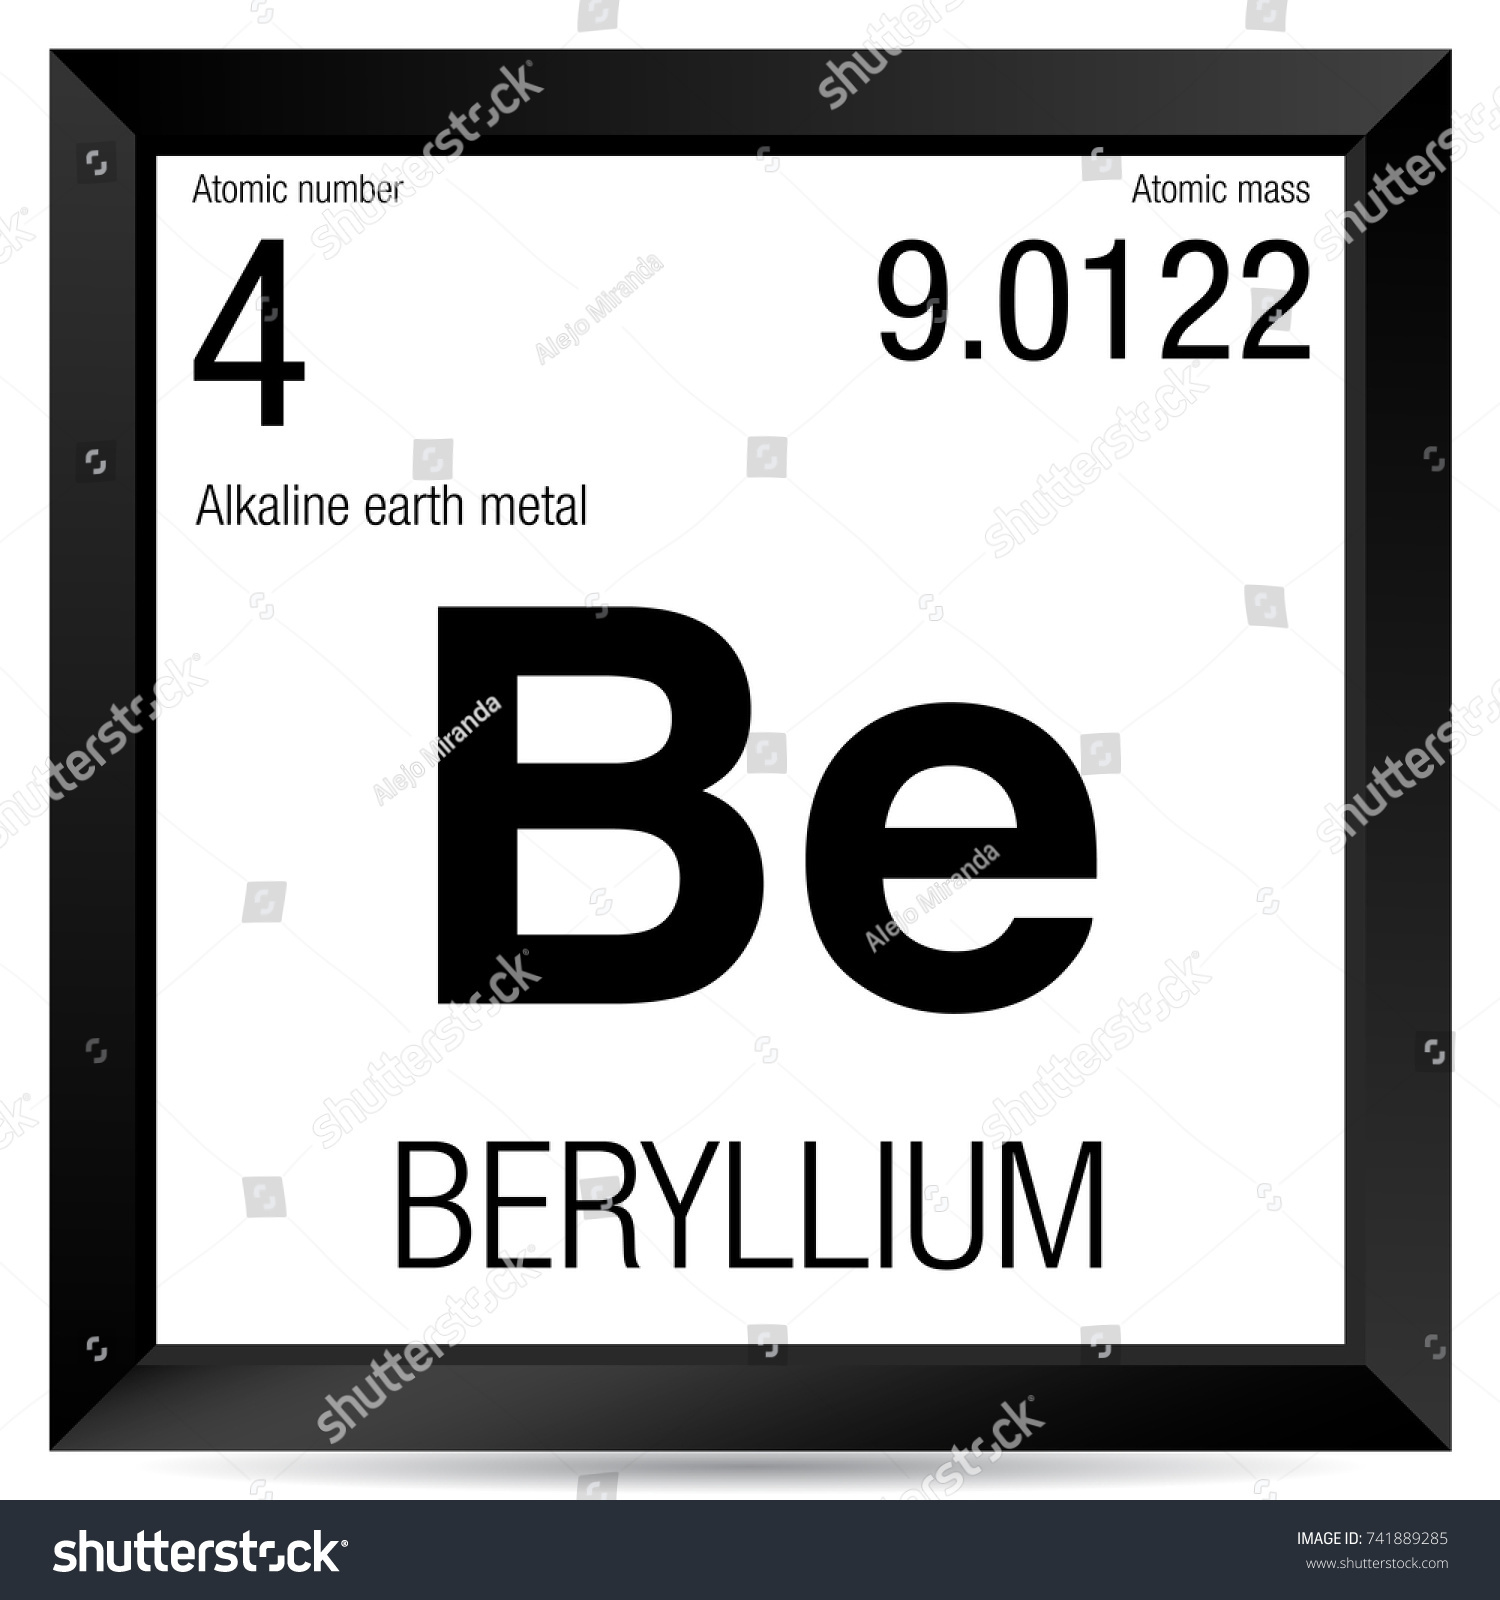 Beryllium symbol element number 4 periodic stock vector 741889285 beryllium symbol element number 4 of the periodic table of the elements chemistry biocorpaavc Images